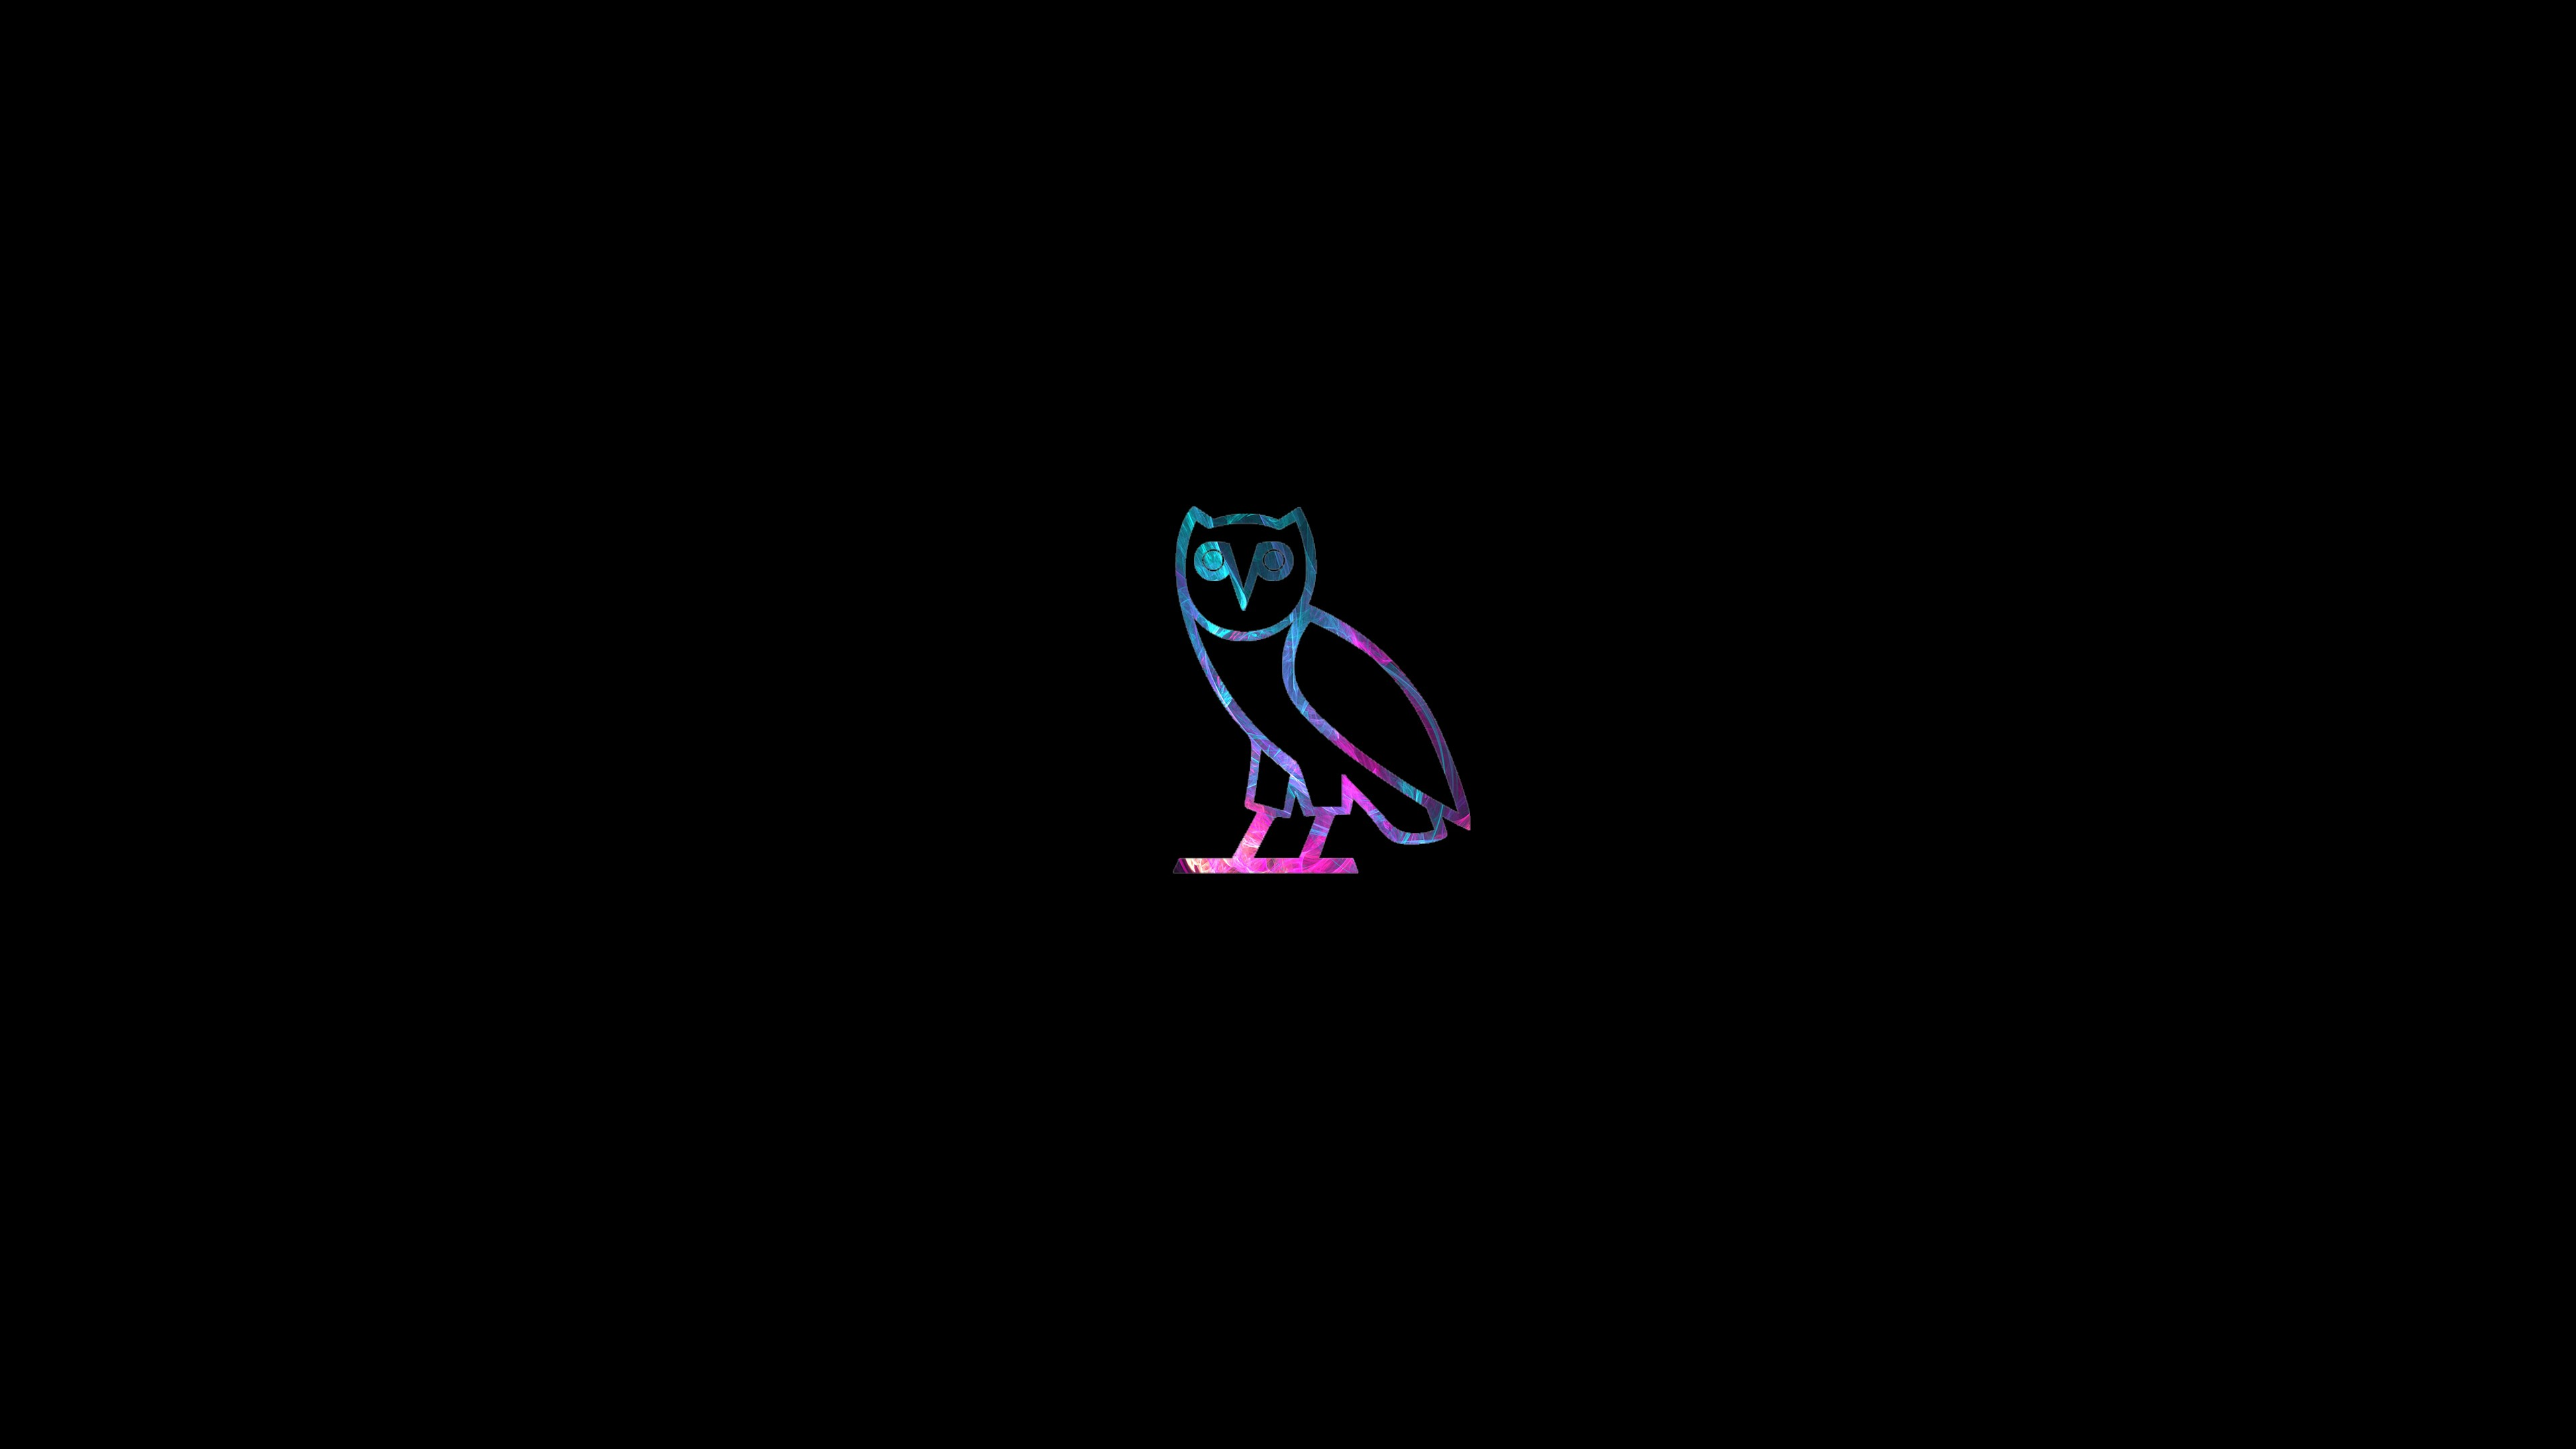 Ovo Wallpaper 1 Download Free Cool HD Wallpapers For Desktop